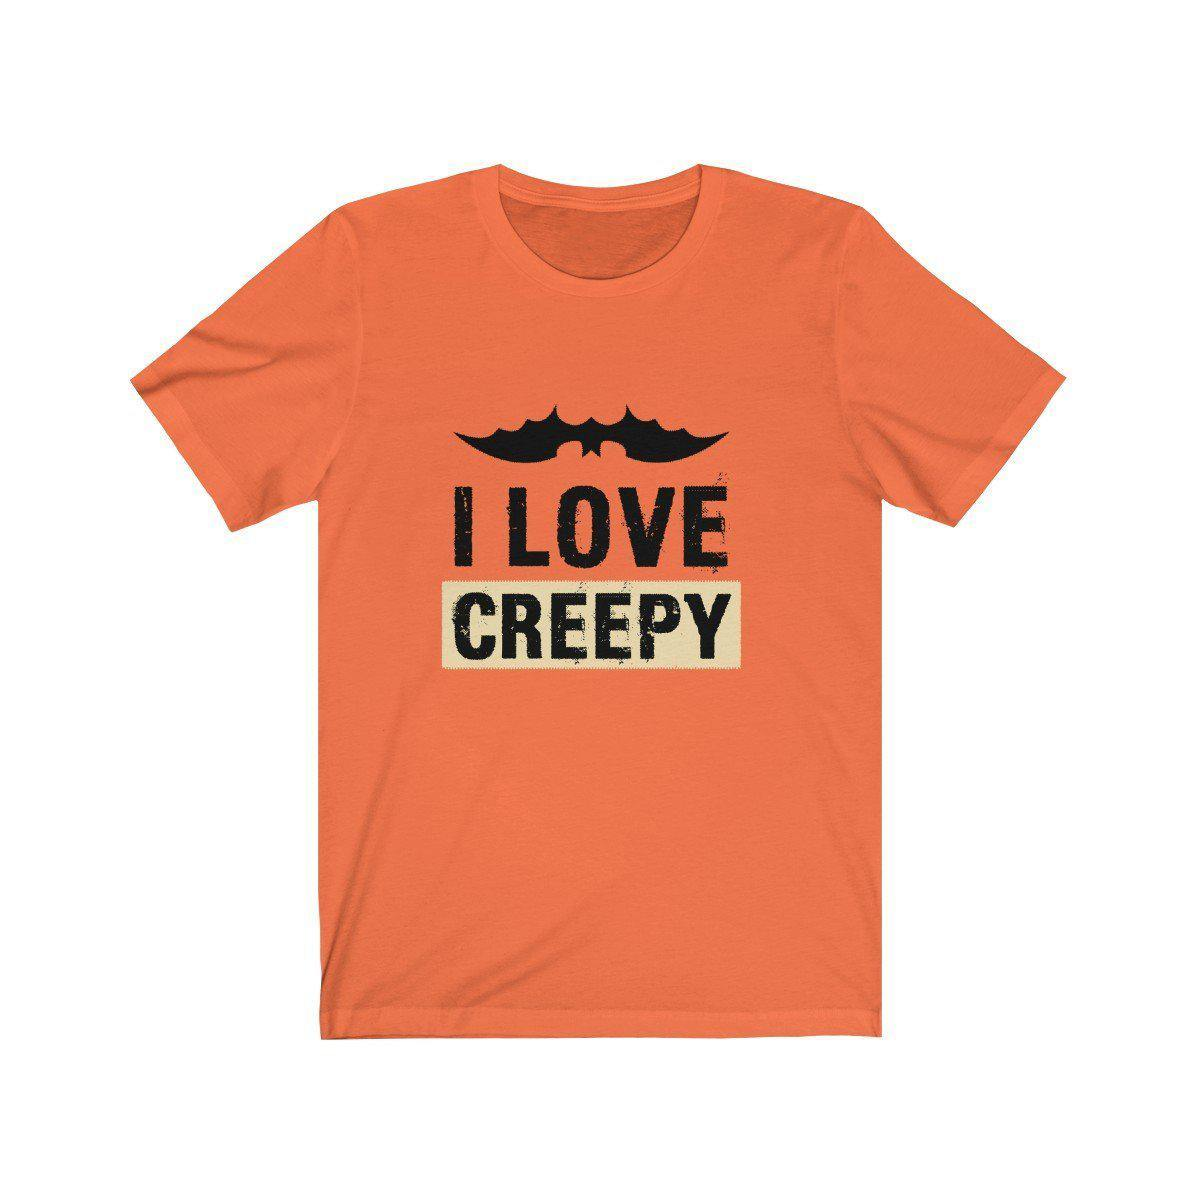 Creepy Halloween T-Shirt - T-Shirt - W.FRANCIS